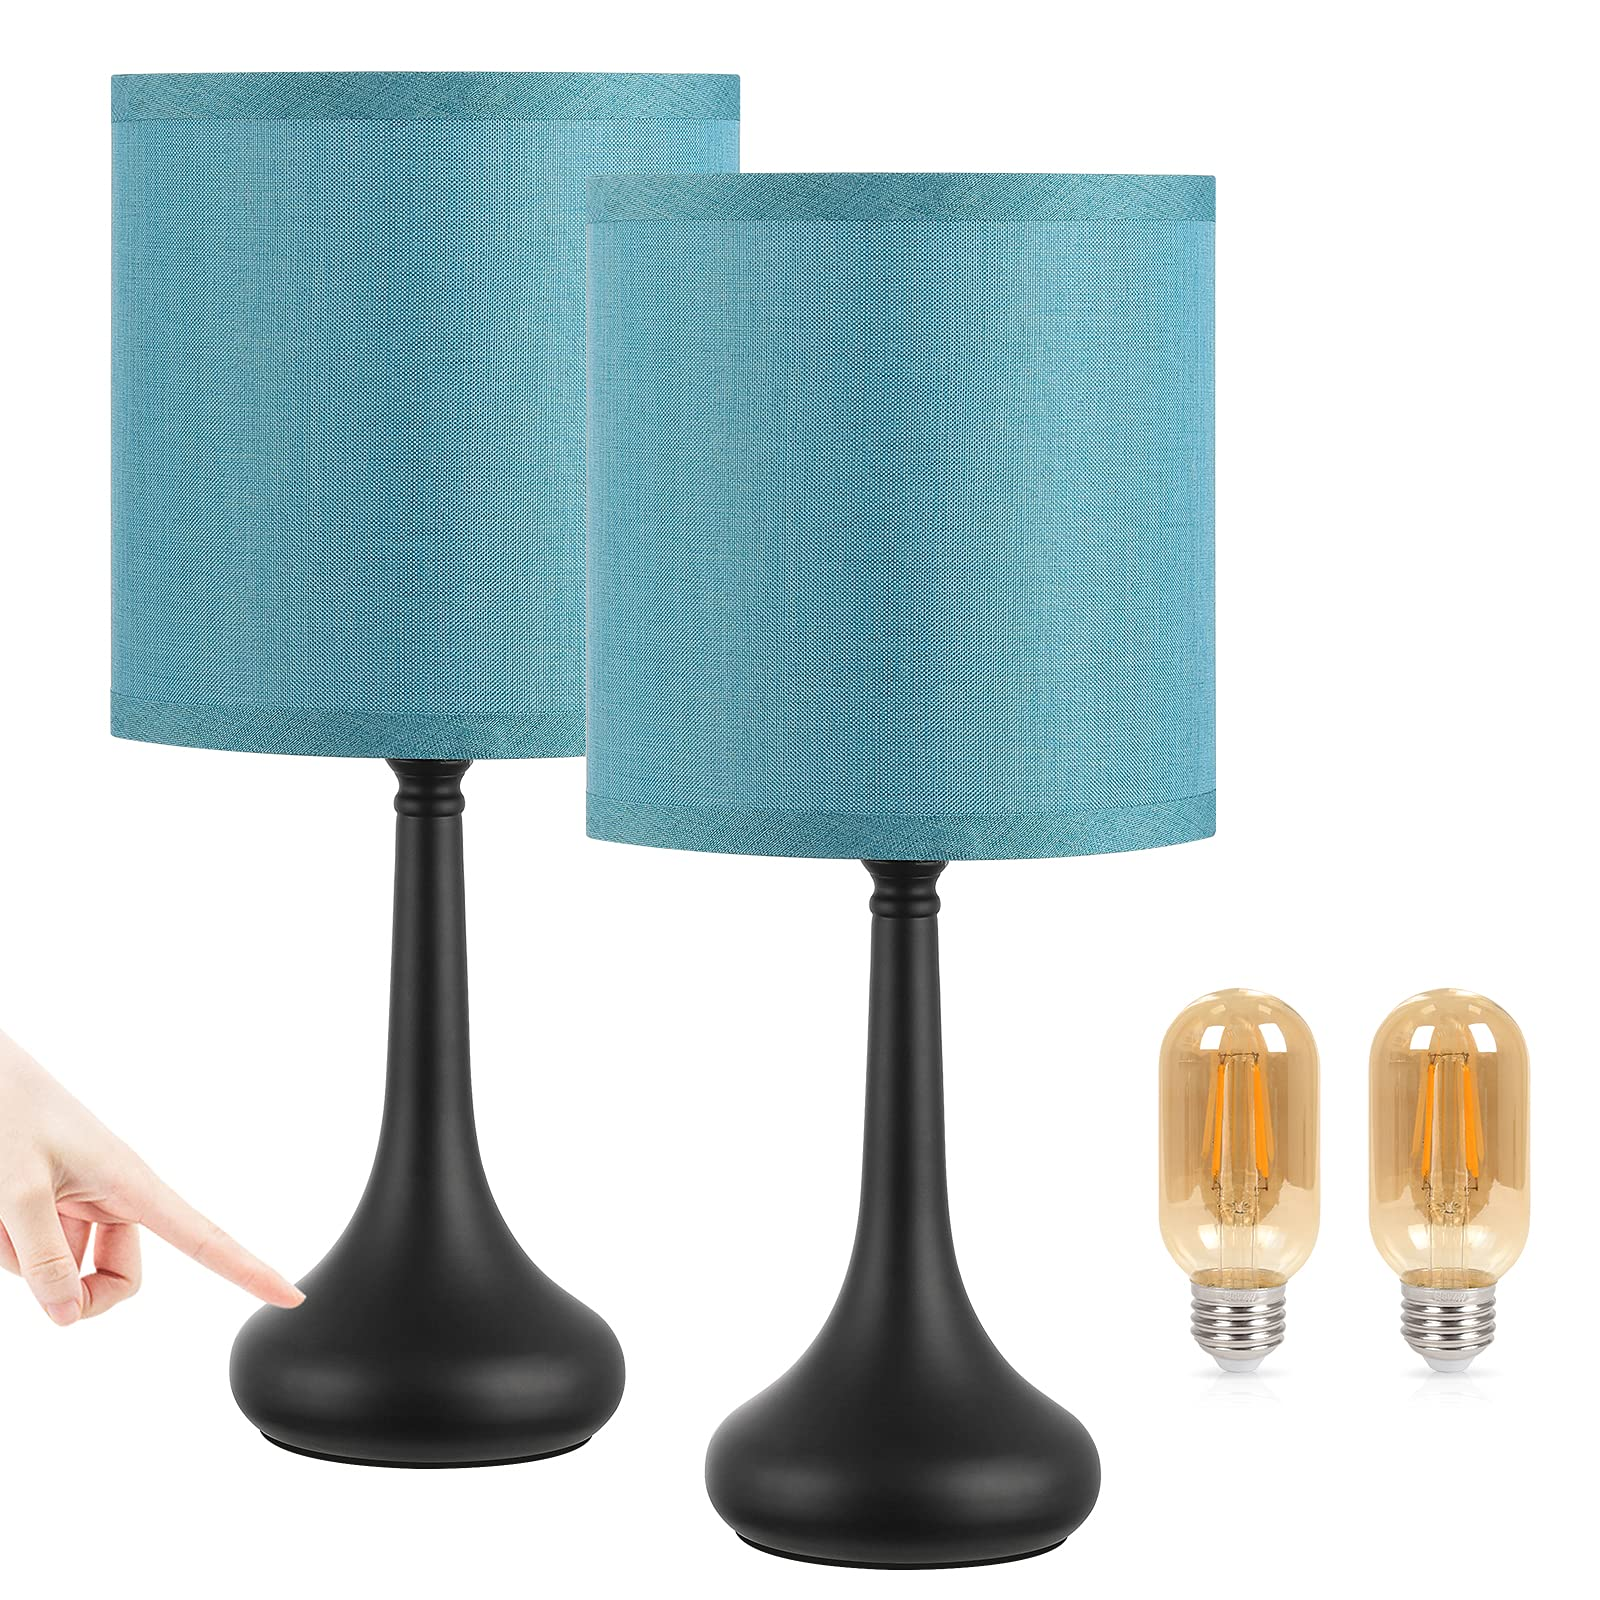 Small Touch Bedside Lamp Nightstand Lamp for Bedroom Set of 2, Kakanuo Blue Touch Lamp Table Lamp, 3 Way Dimmable Desk Lamp with Lampshade for Bedroom, Living Room and Office (LED Bulbs Included)